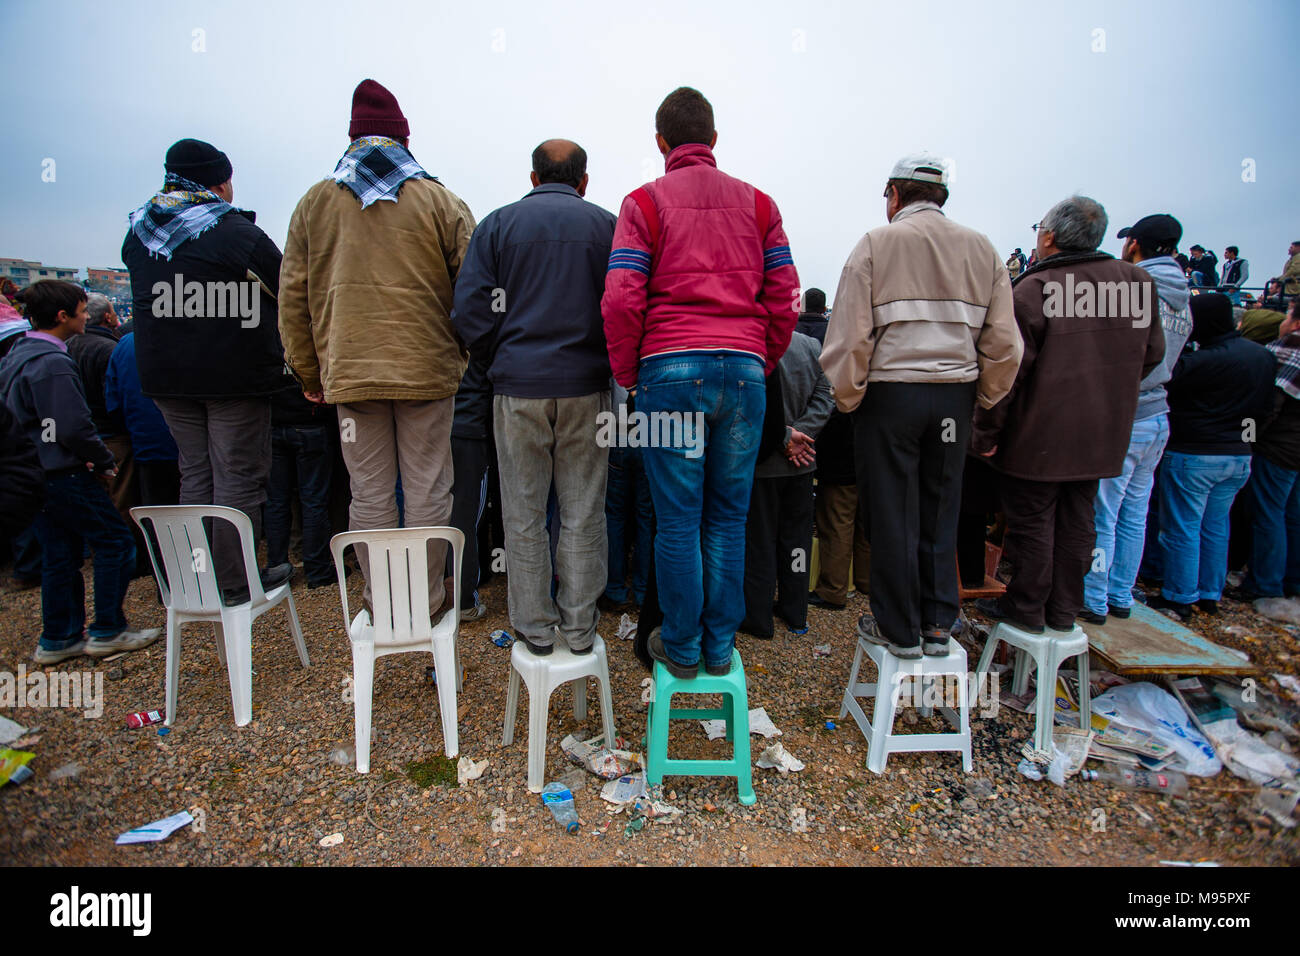 A long shot encapsulating a crowd watching camel wrestling in Turkey. - Stock Image